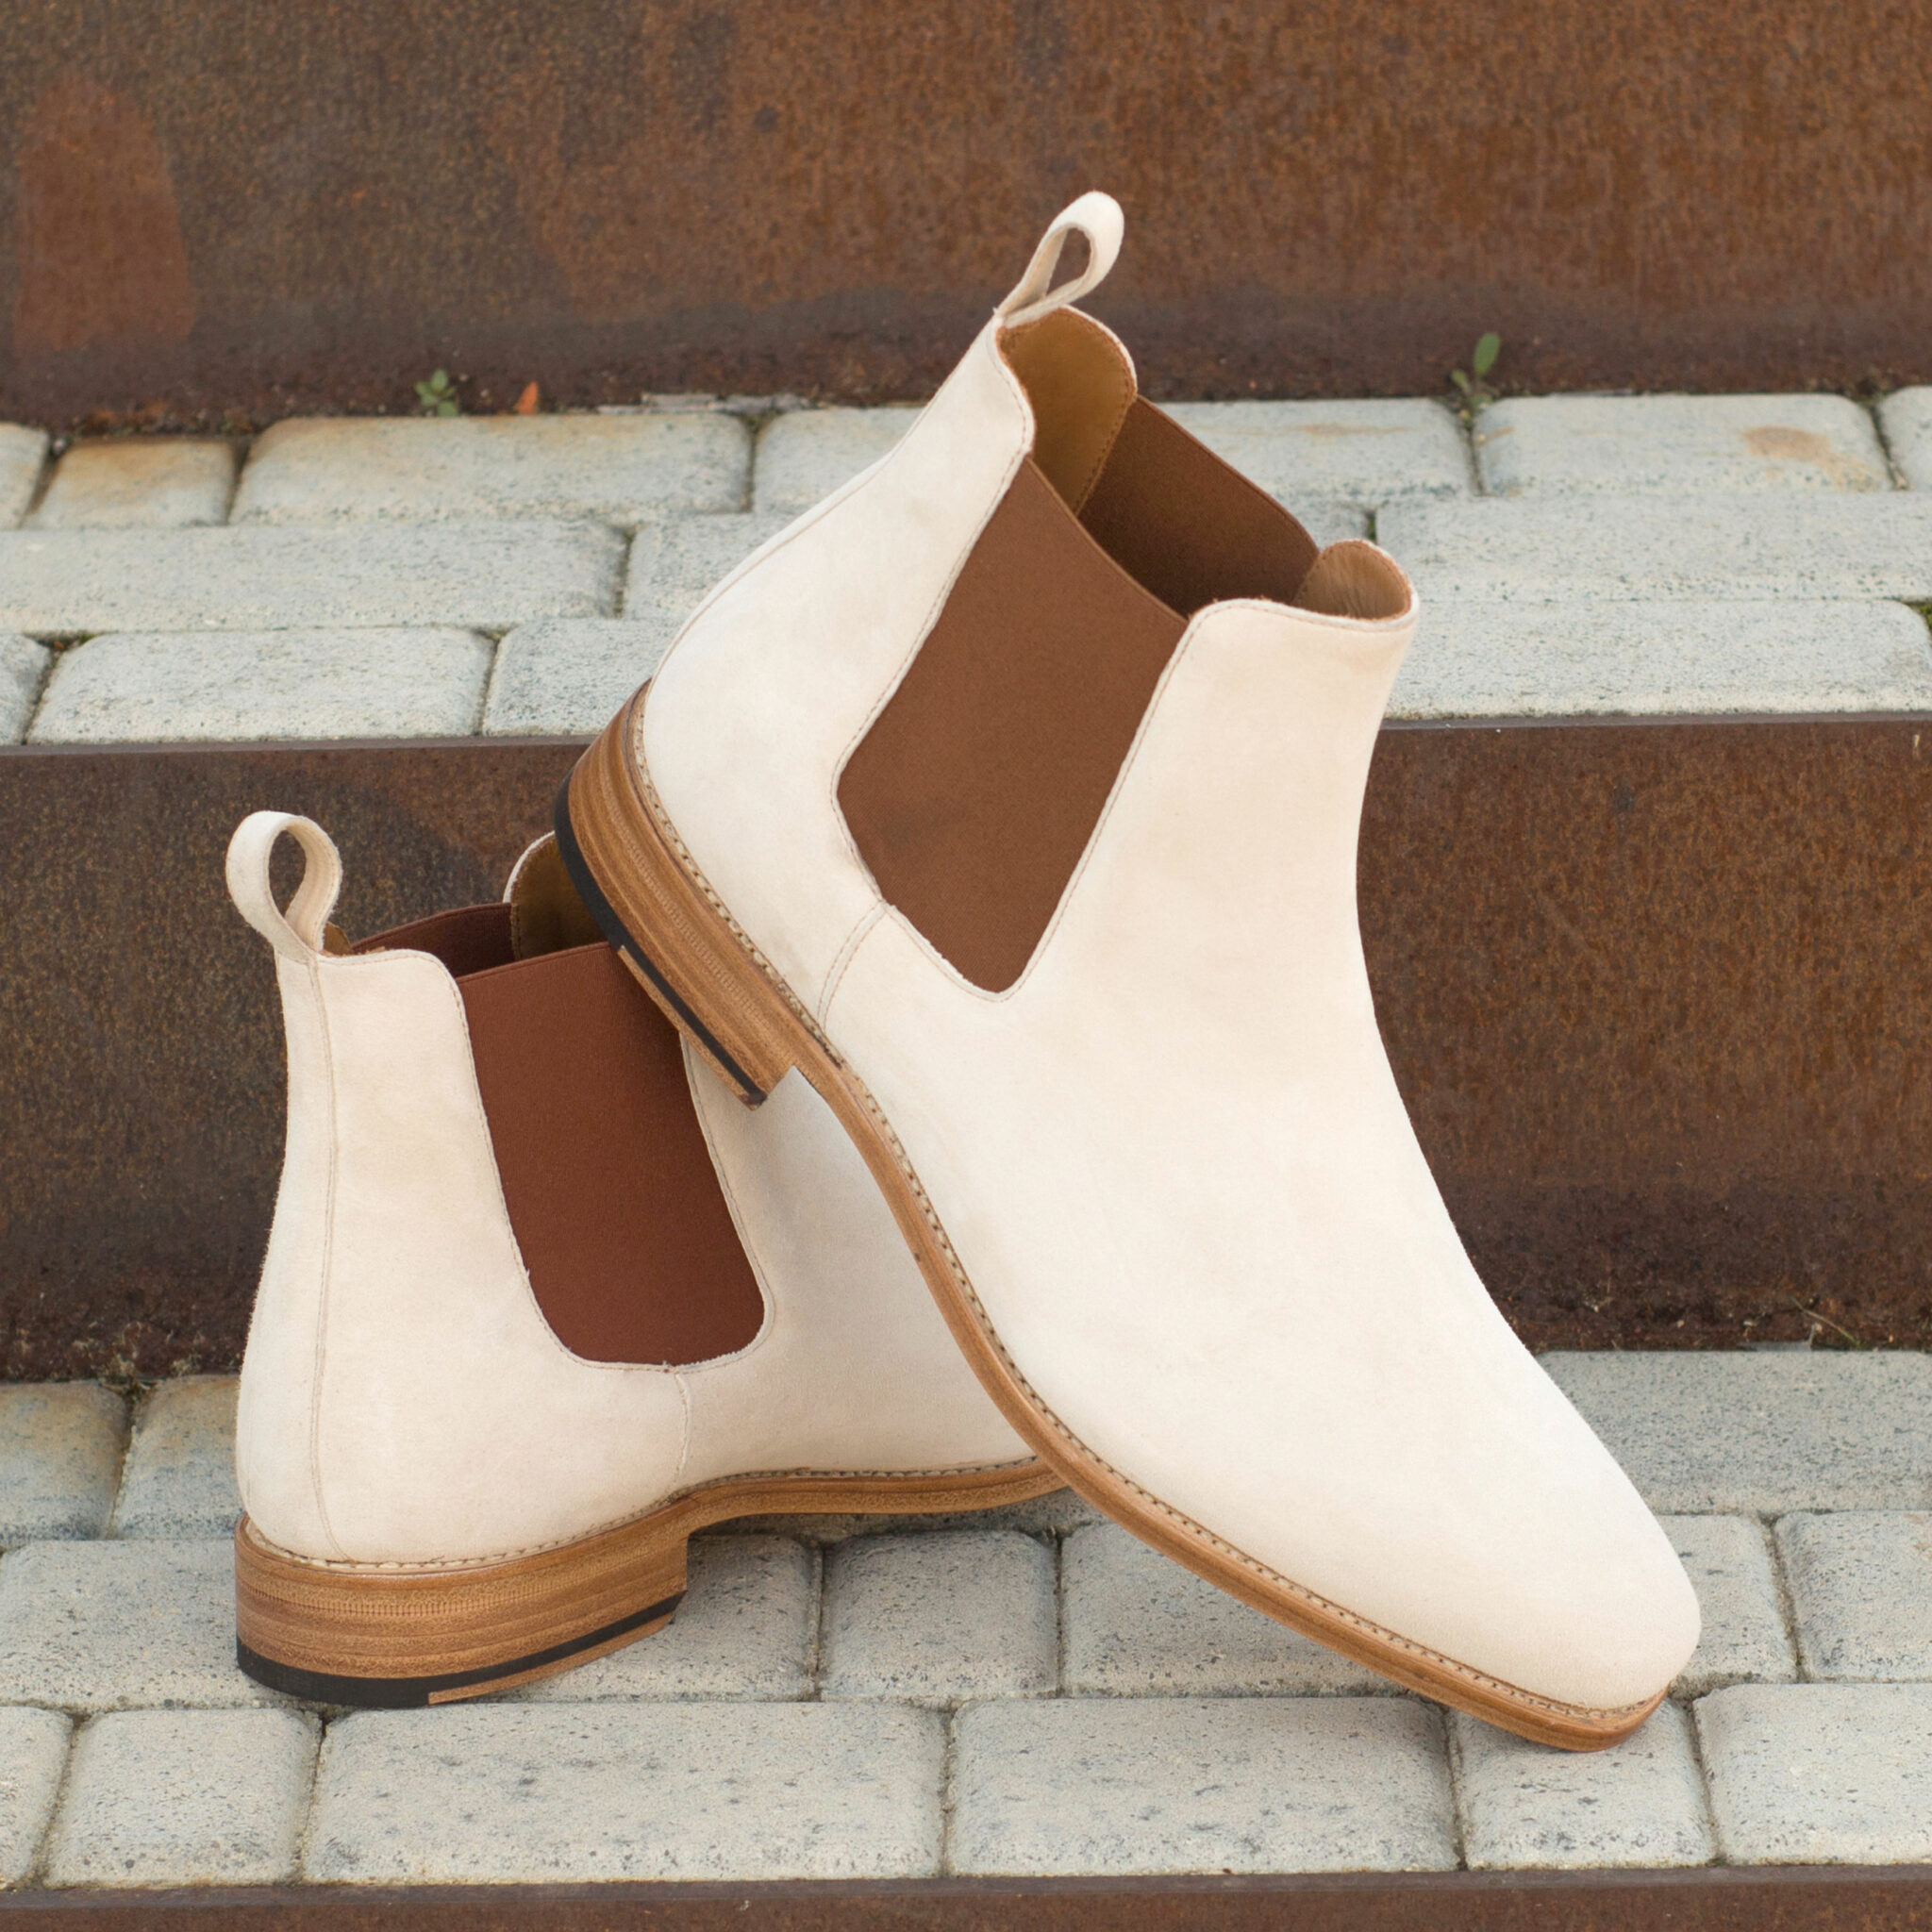 http://dossantosshoes.made-to-order.com/get-inspired/?d=fda3c92f-51c3-4009-9737-36ae477c7057